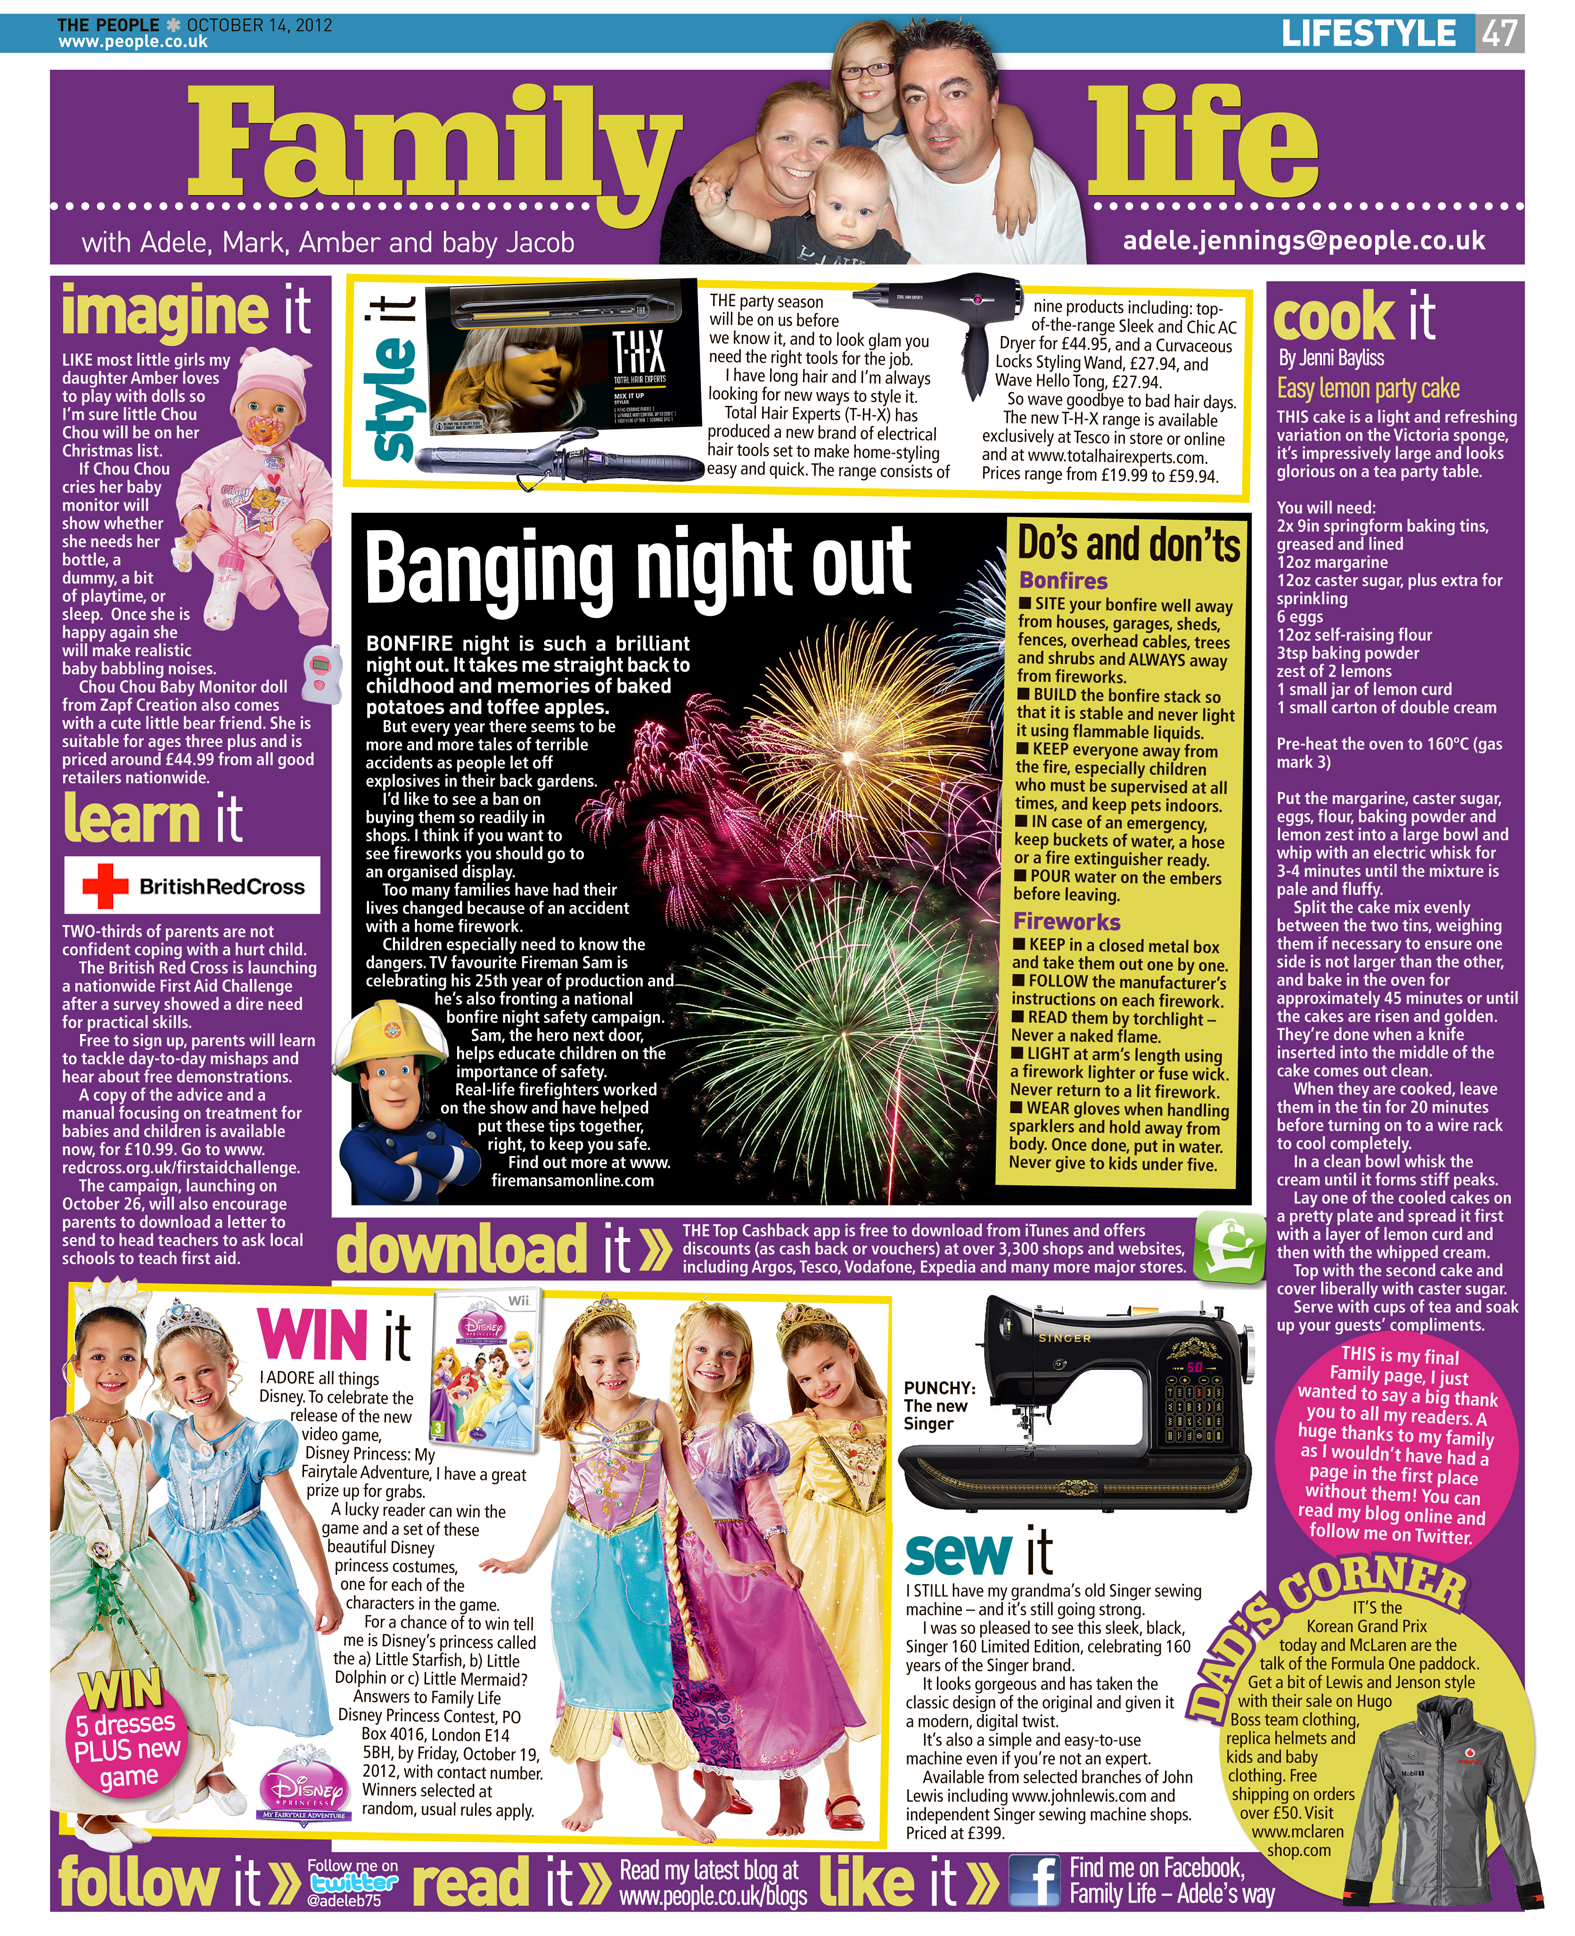 Published in The Sunday People, October 14, 2012